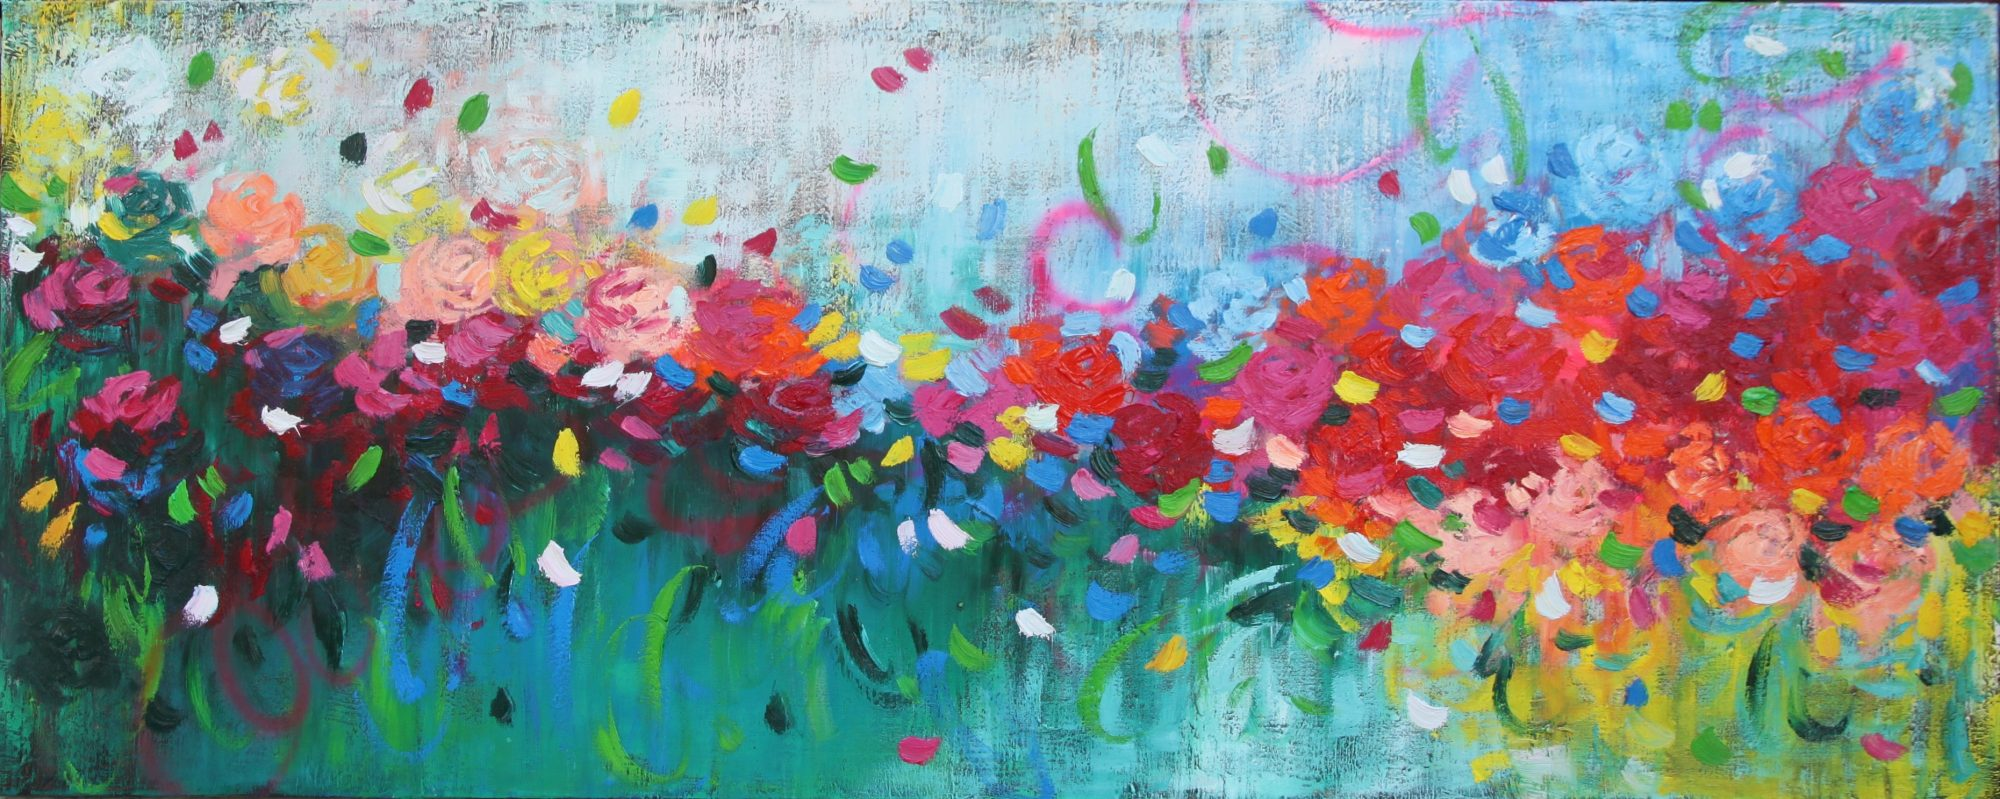 Belinda Nadwie Art Abstract Painting Sydney Artist My Love For You